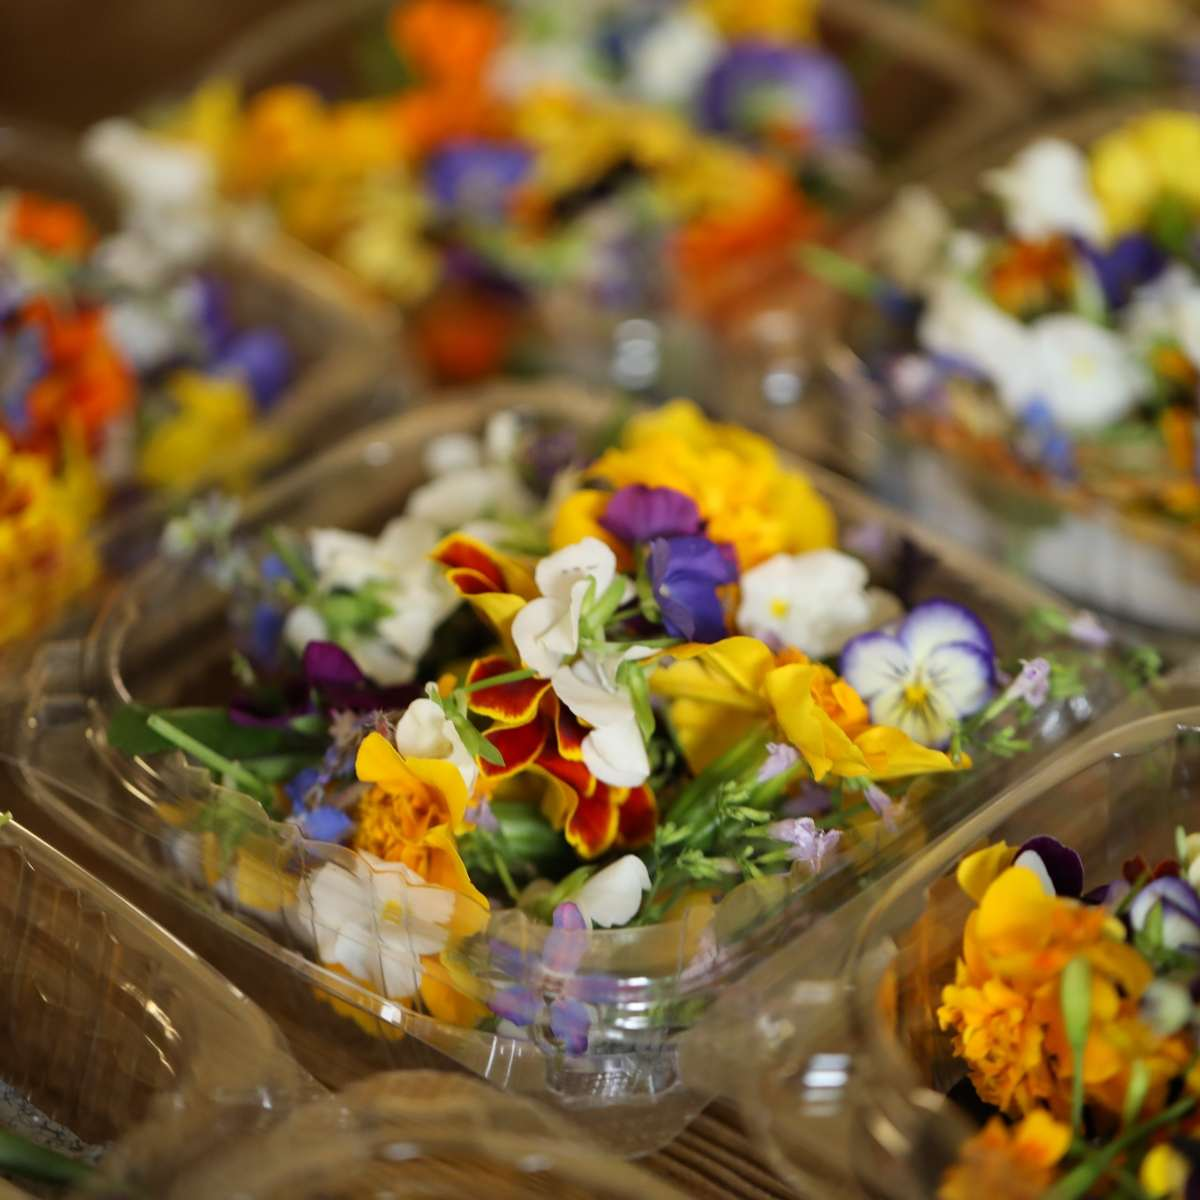 growing edible flowers for chefs